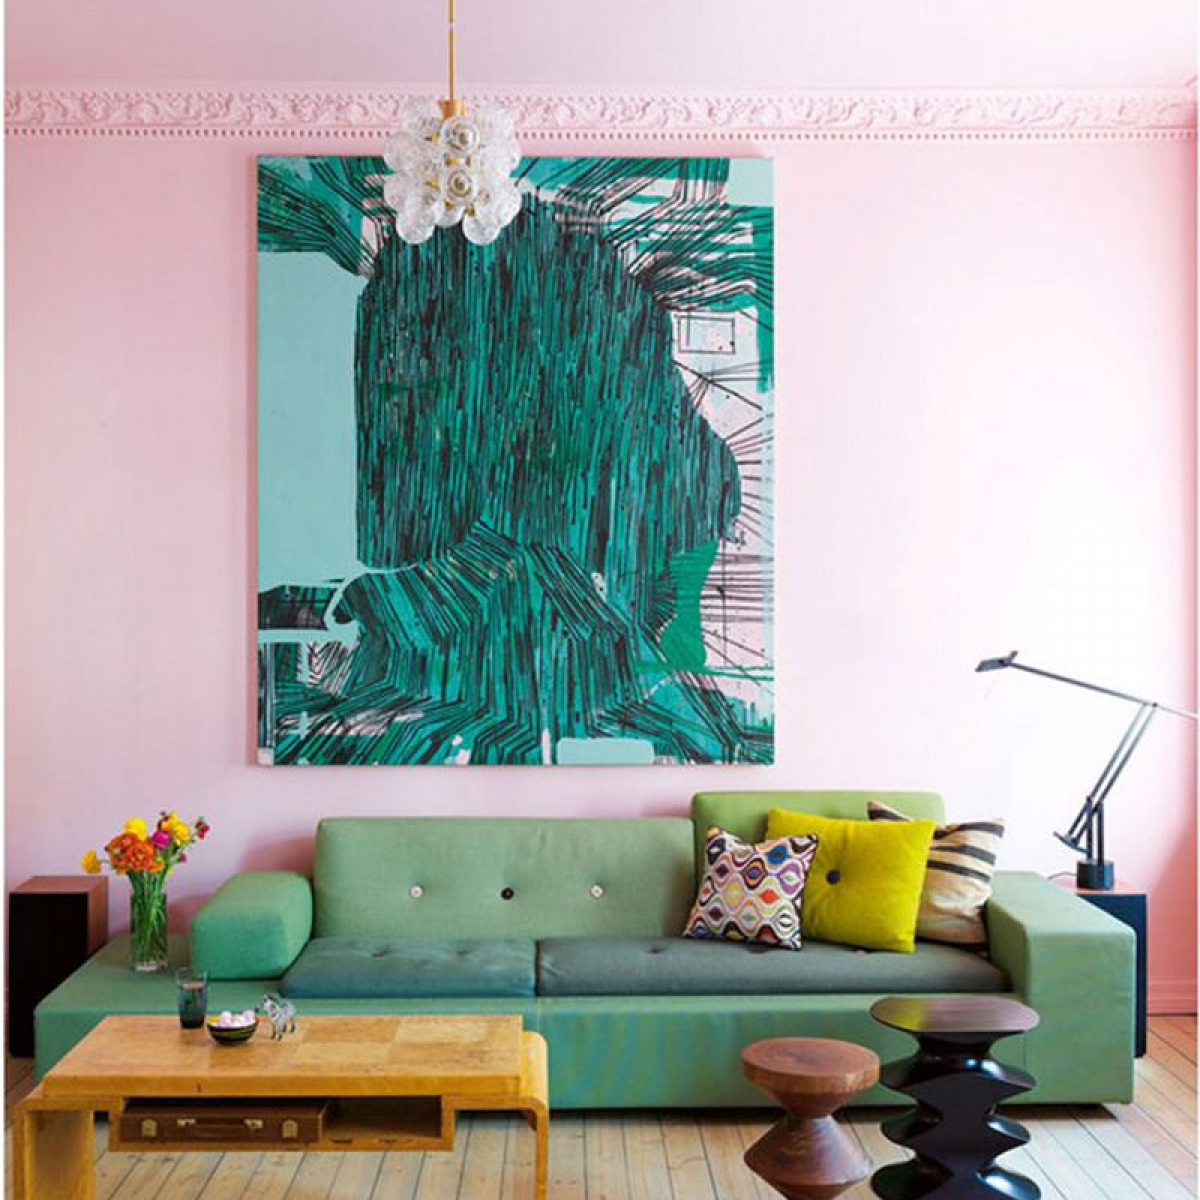 Delightful Pale Pink Walls And Shots Of Emerald Green Artwrk And Green Sofa Make This Living  Room Part 27